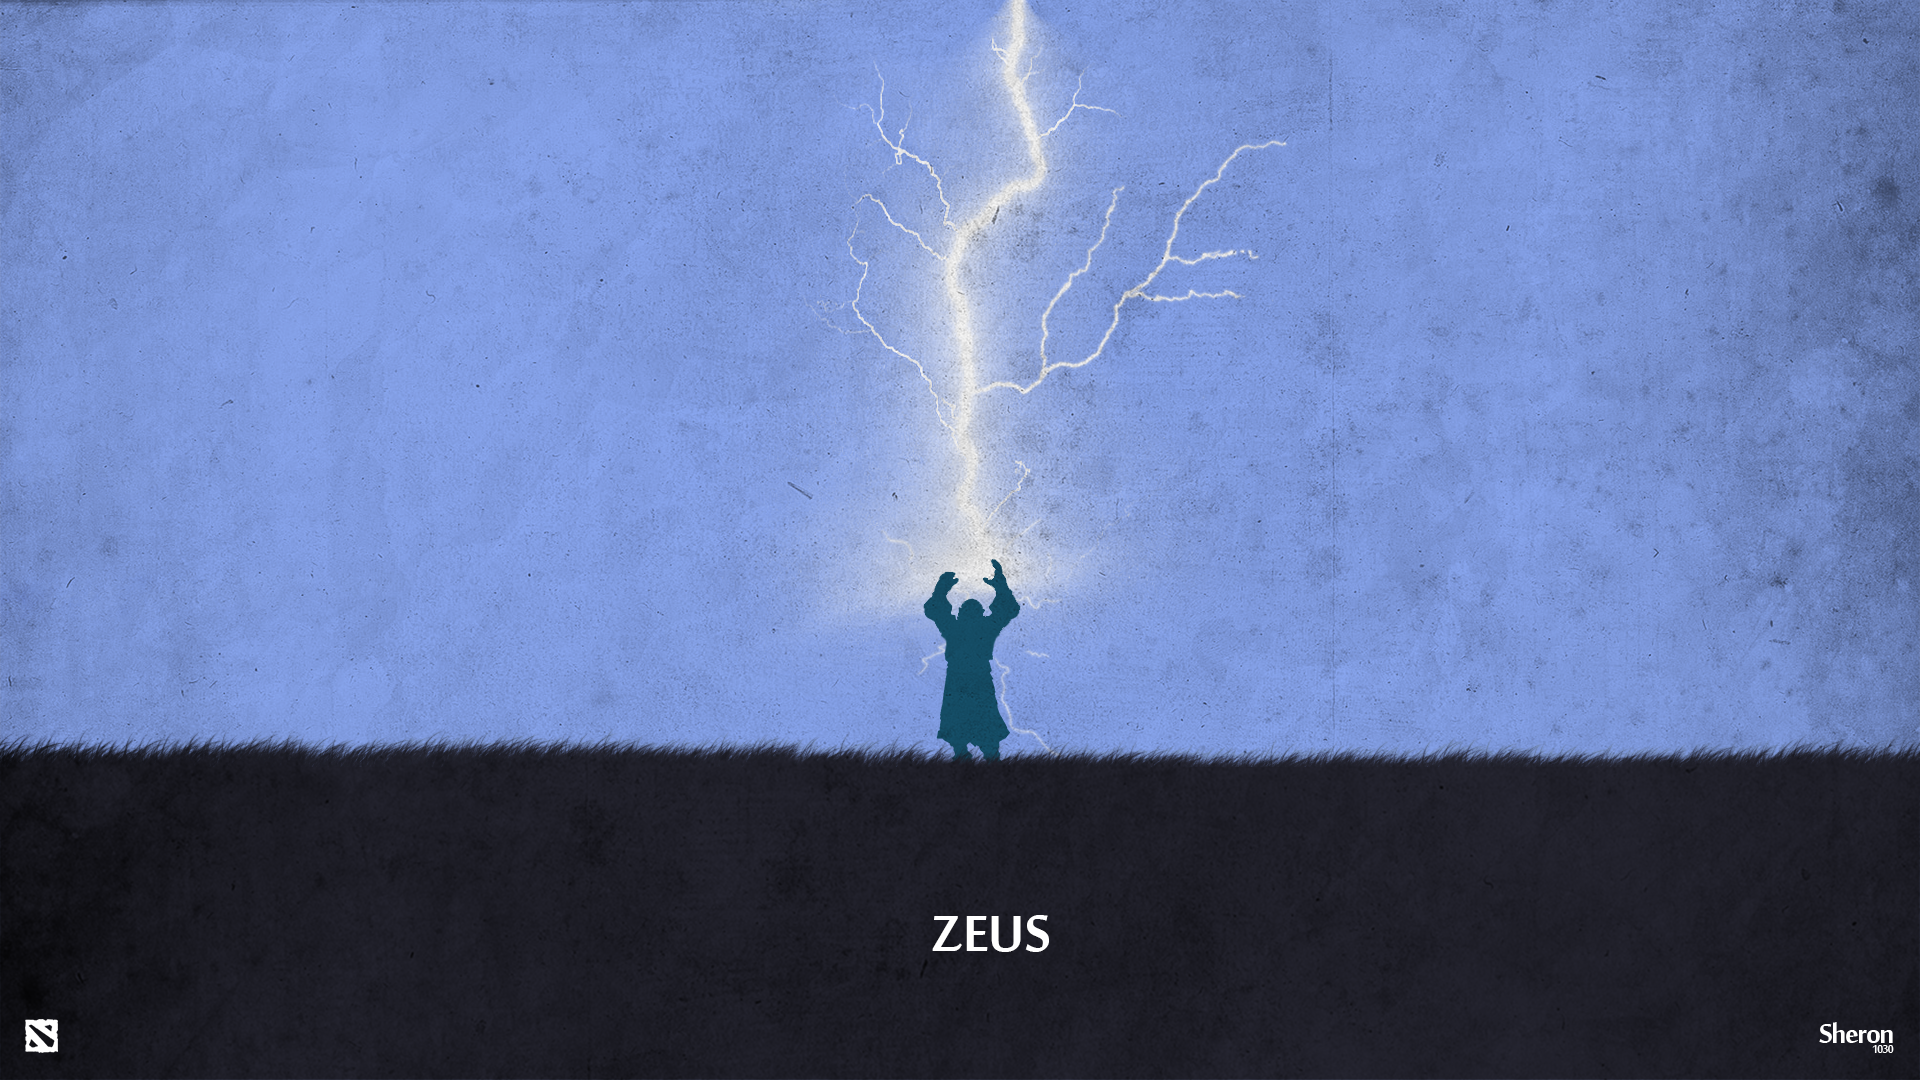 dota_2___zeus_wallpaper_by_sheron1030-d67j7h0